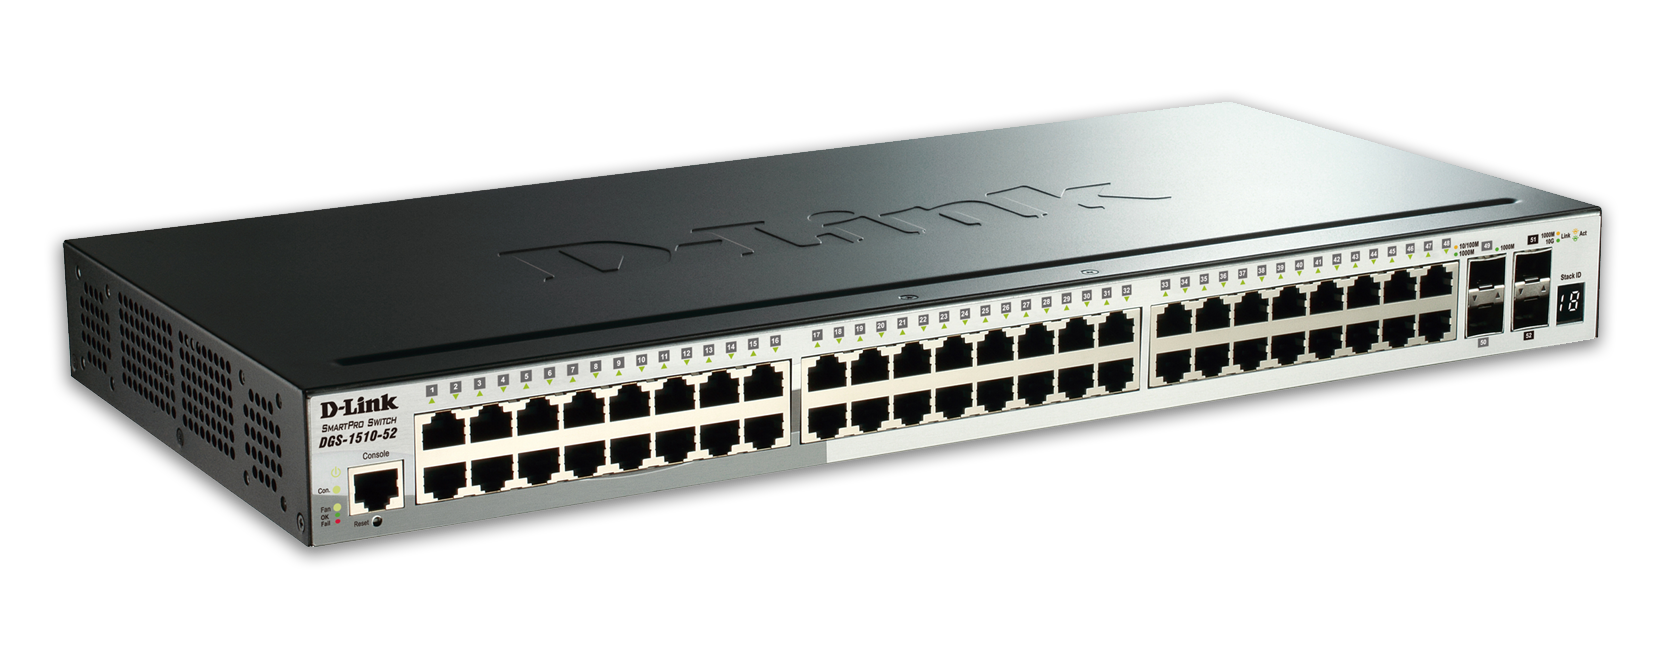 D-Link DGS-1510-52 52-Port Gigabit Stackable Smart Managed Switch including 2 10G SFP+ and 2 SFP ports (smart fans)